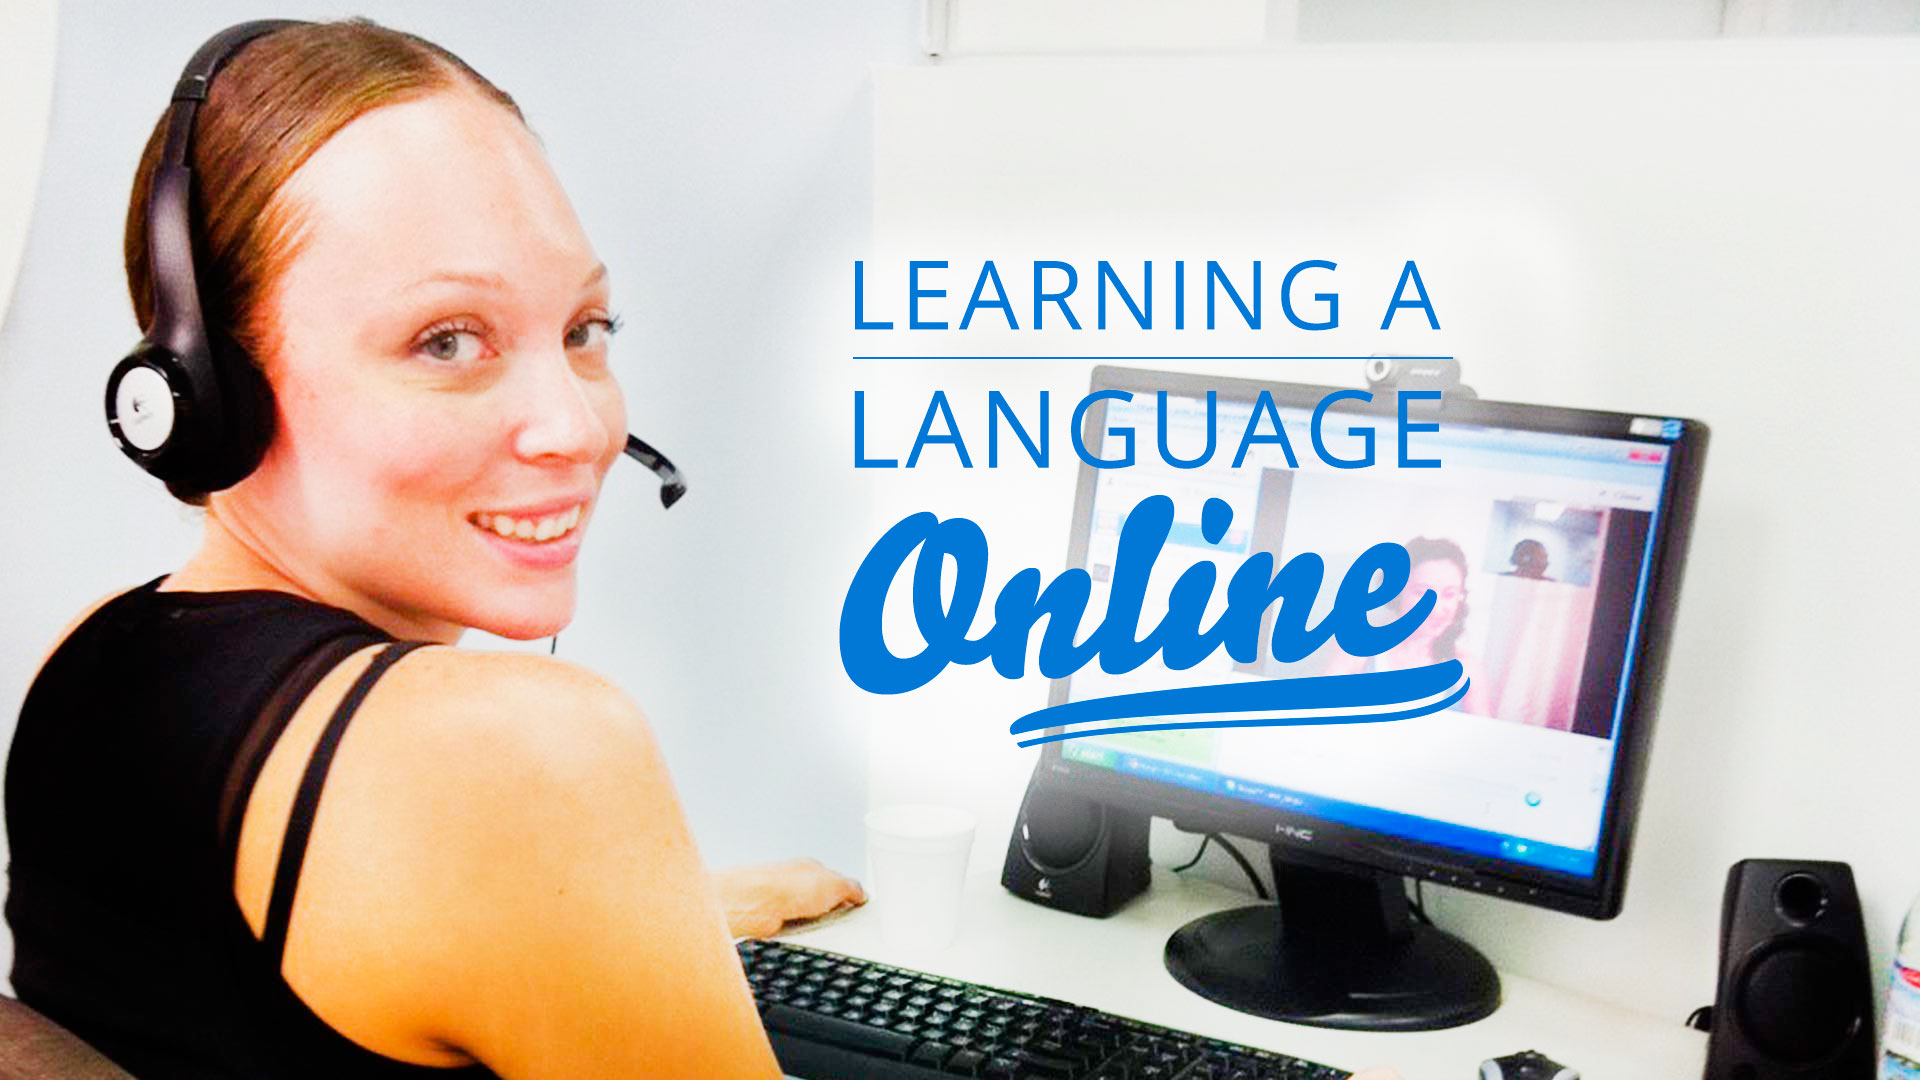 Learning a Language Online